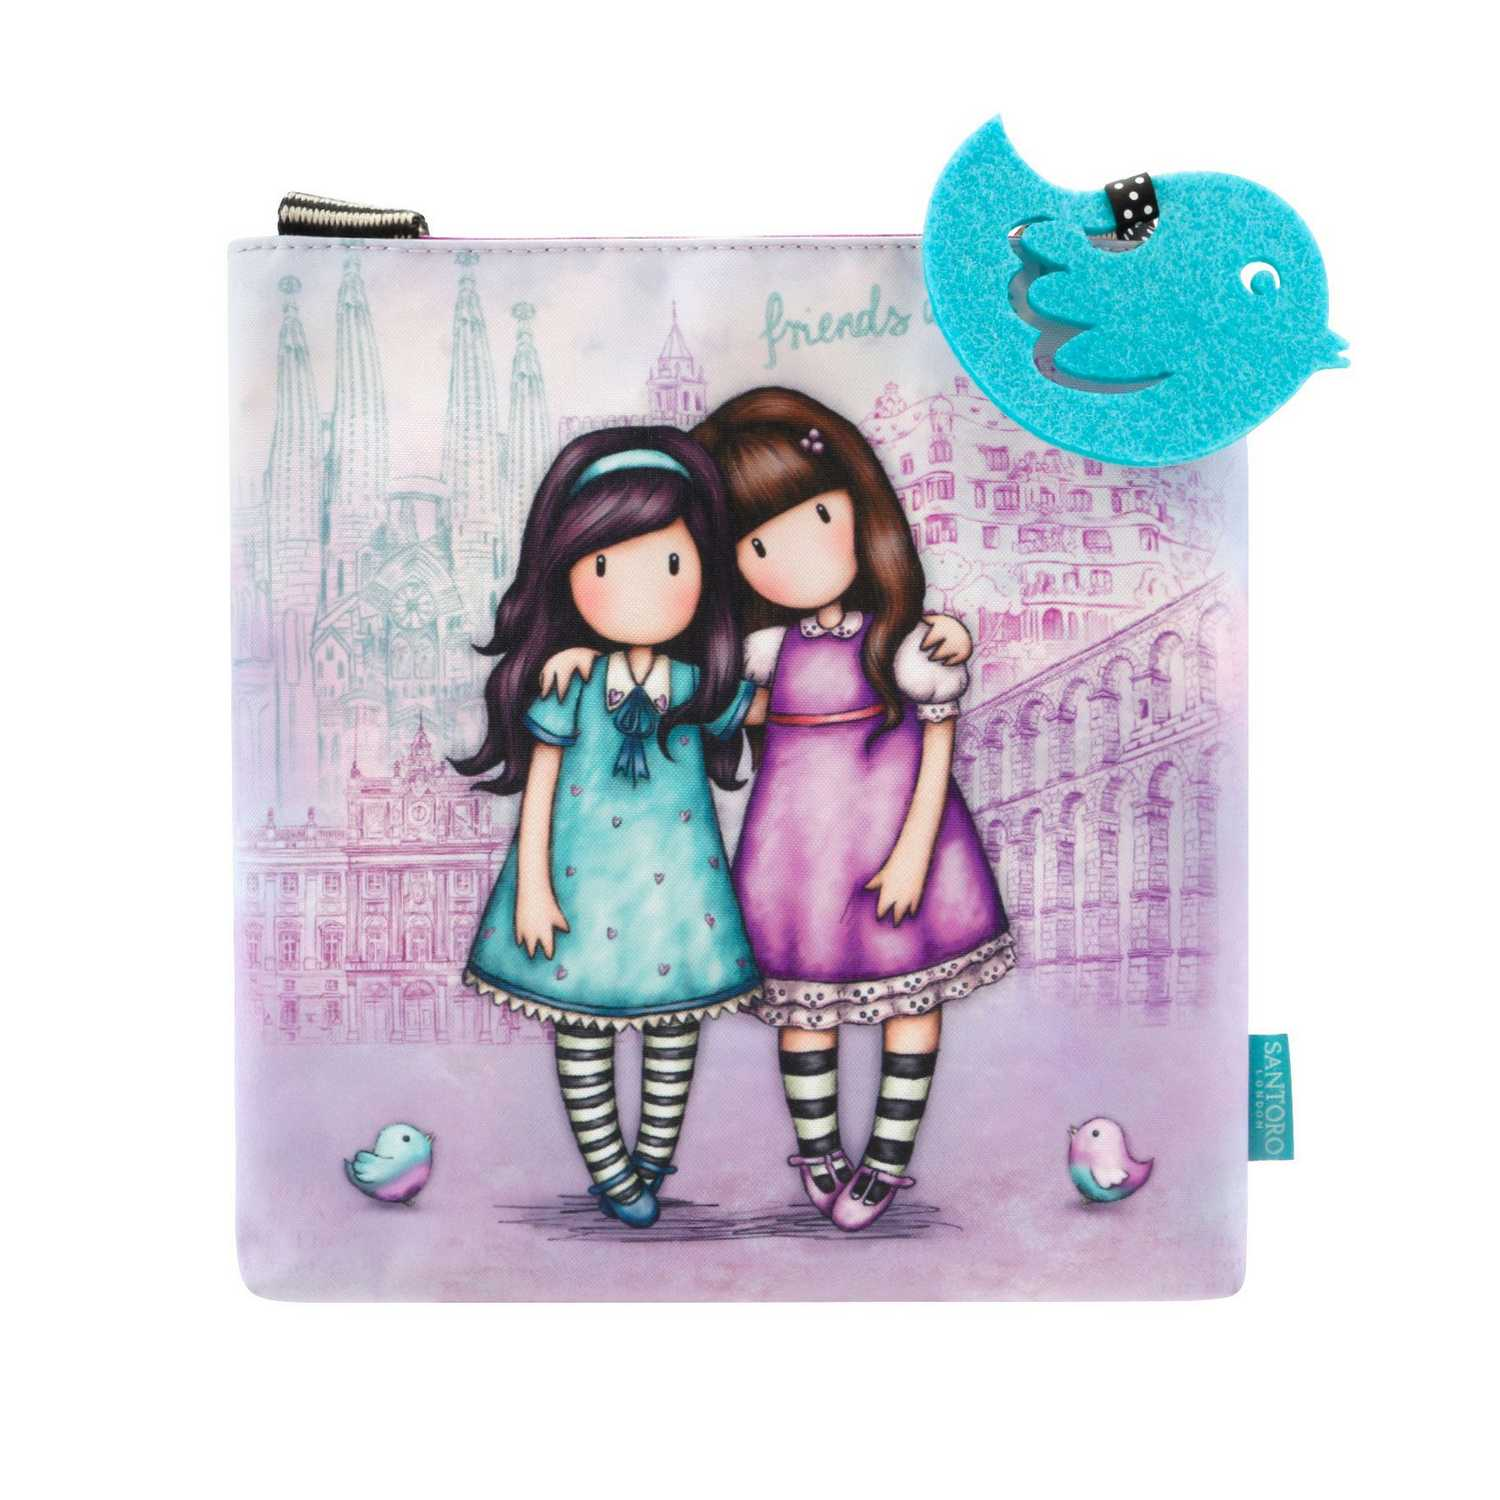 Купить Сумка на плечо Friends Walk Together серия Gorjuss Stripes 26x21x2 см, Santoro London